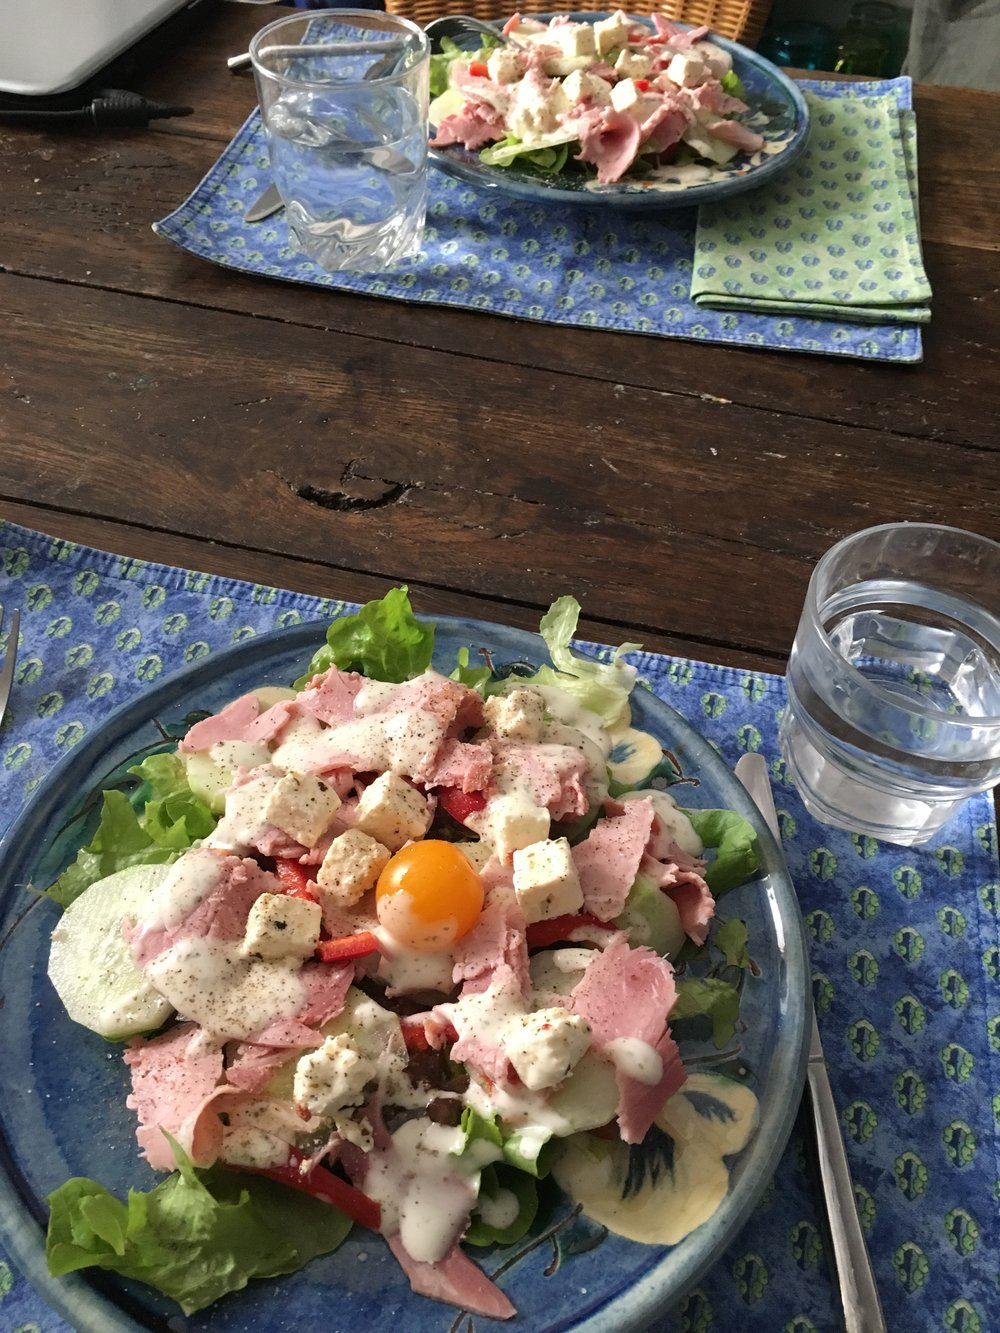 A healthy lunchtime salad at the Lainie's Healing House before the tasty coffee and dessert arrive.